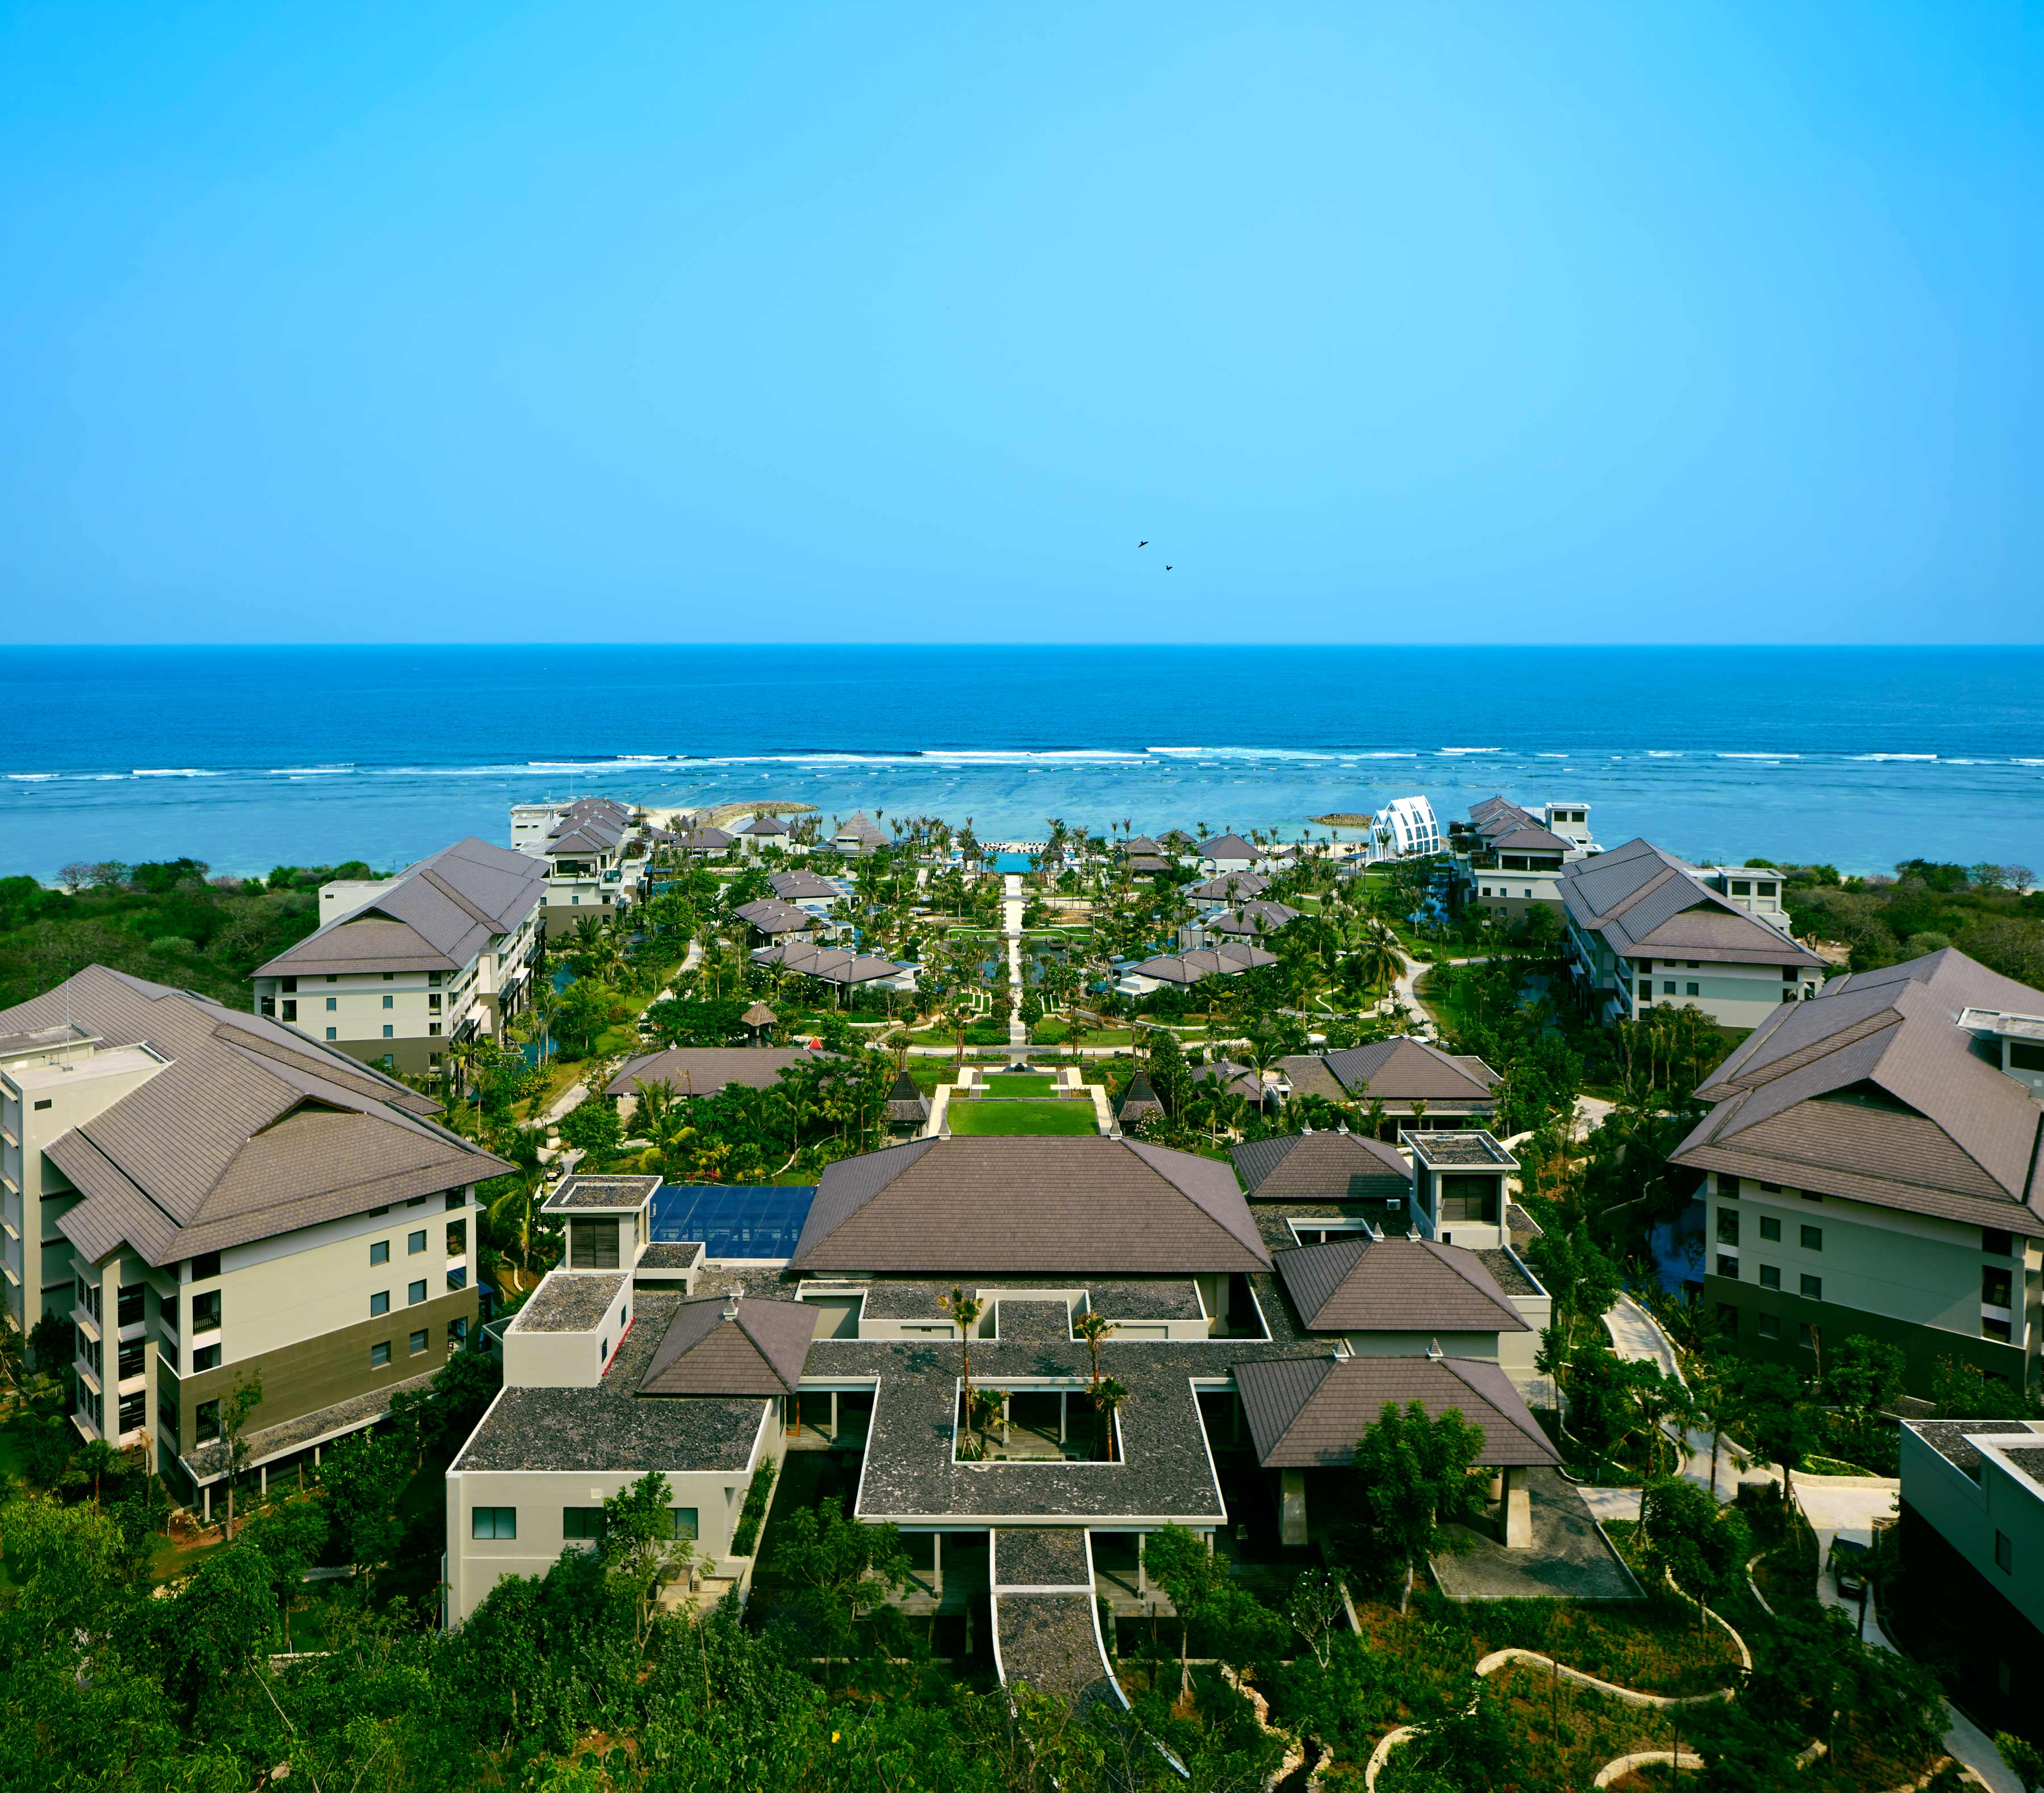 A bird's-eye view of the Ritz-Carlton, Bali